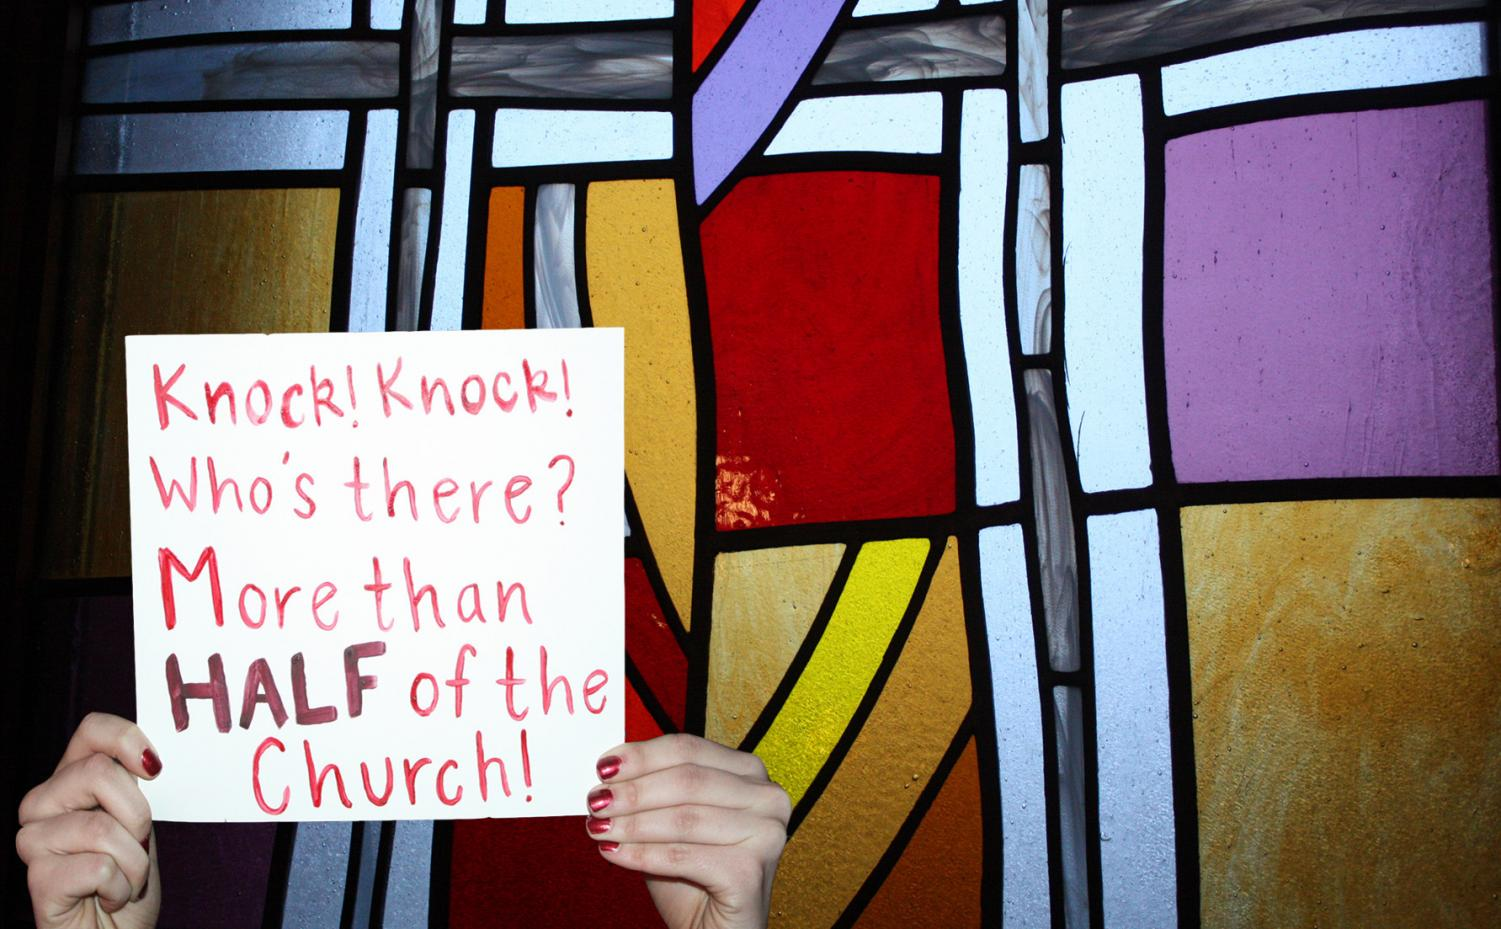 This poster was made by Lauren Lindmeier and the photo of the stained glass window is from Saint Francis Xavier Church in Sartell, the poster is similar to what the female protestors chanted outside of the Vatican.